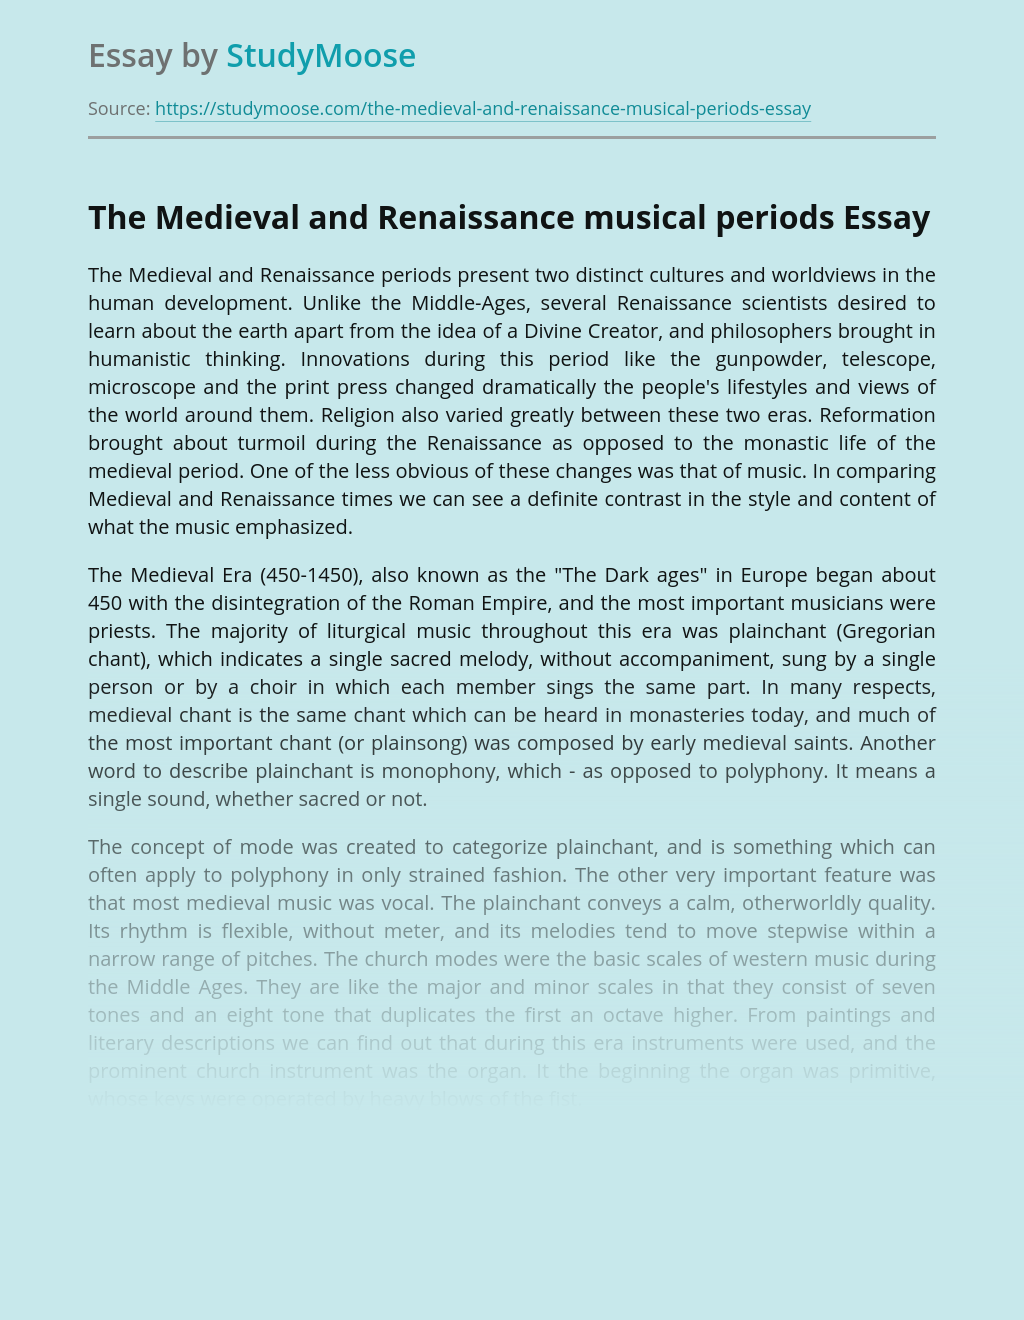 The Medieval and Renaissance musical periods